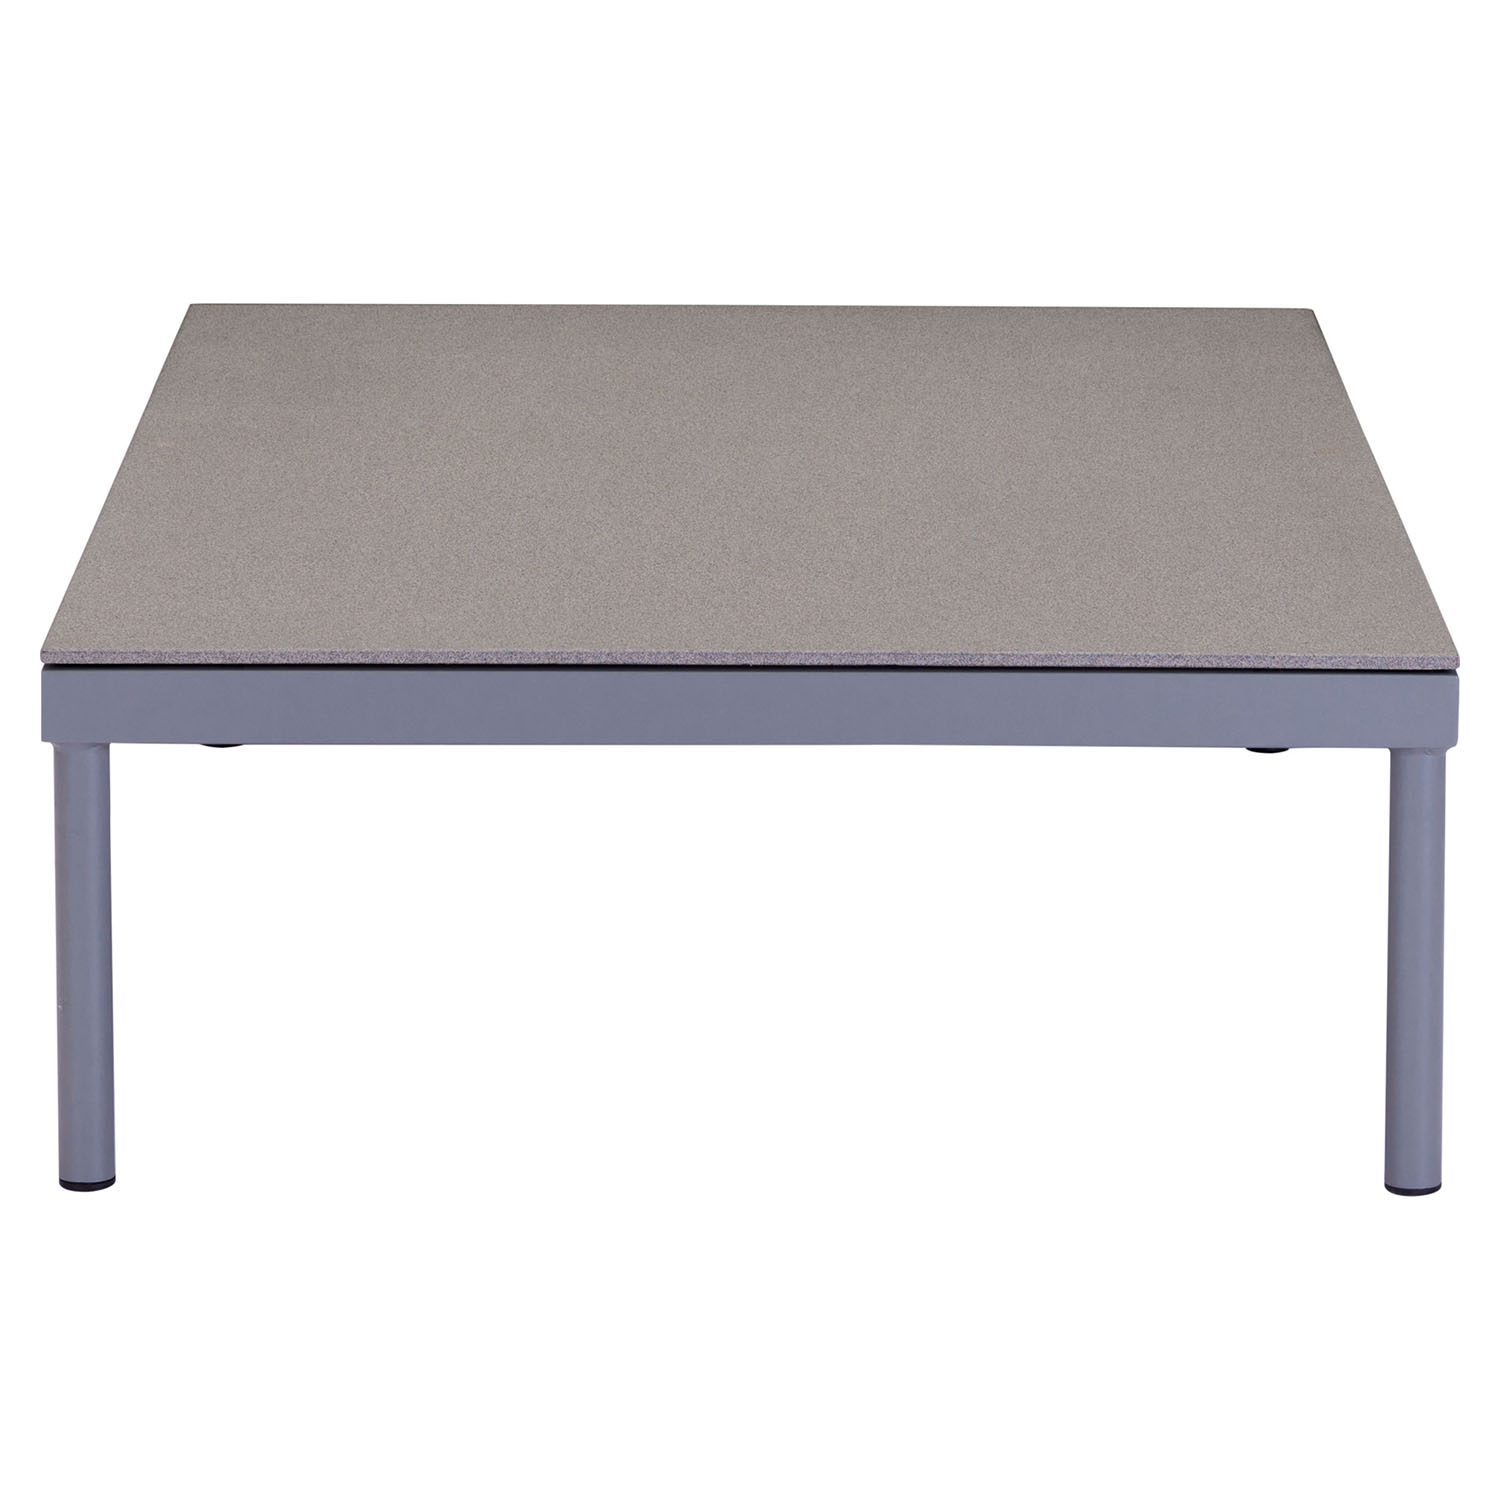 Sand Beach Coffee Table Gray and Granite DCG Stores : 703578 1 from www.dcgstores.com size 1500 x 1500 jpeg 165kB